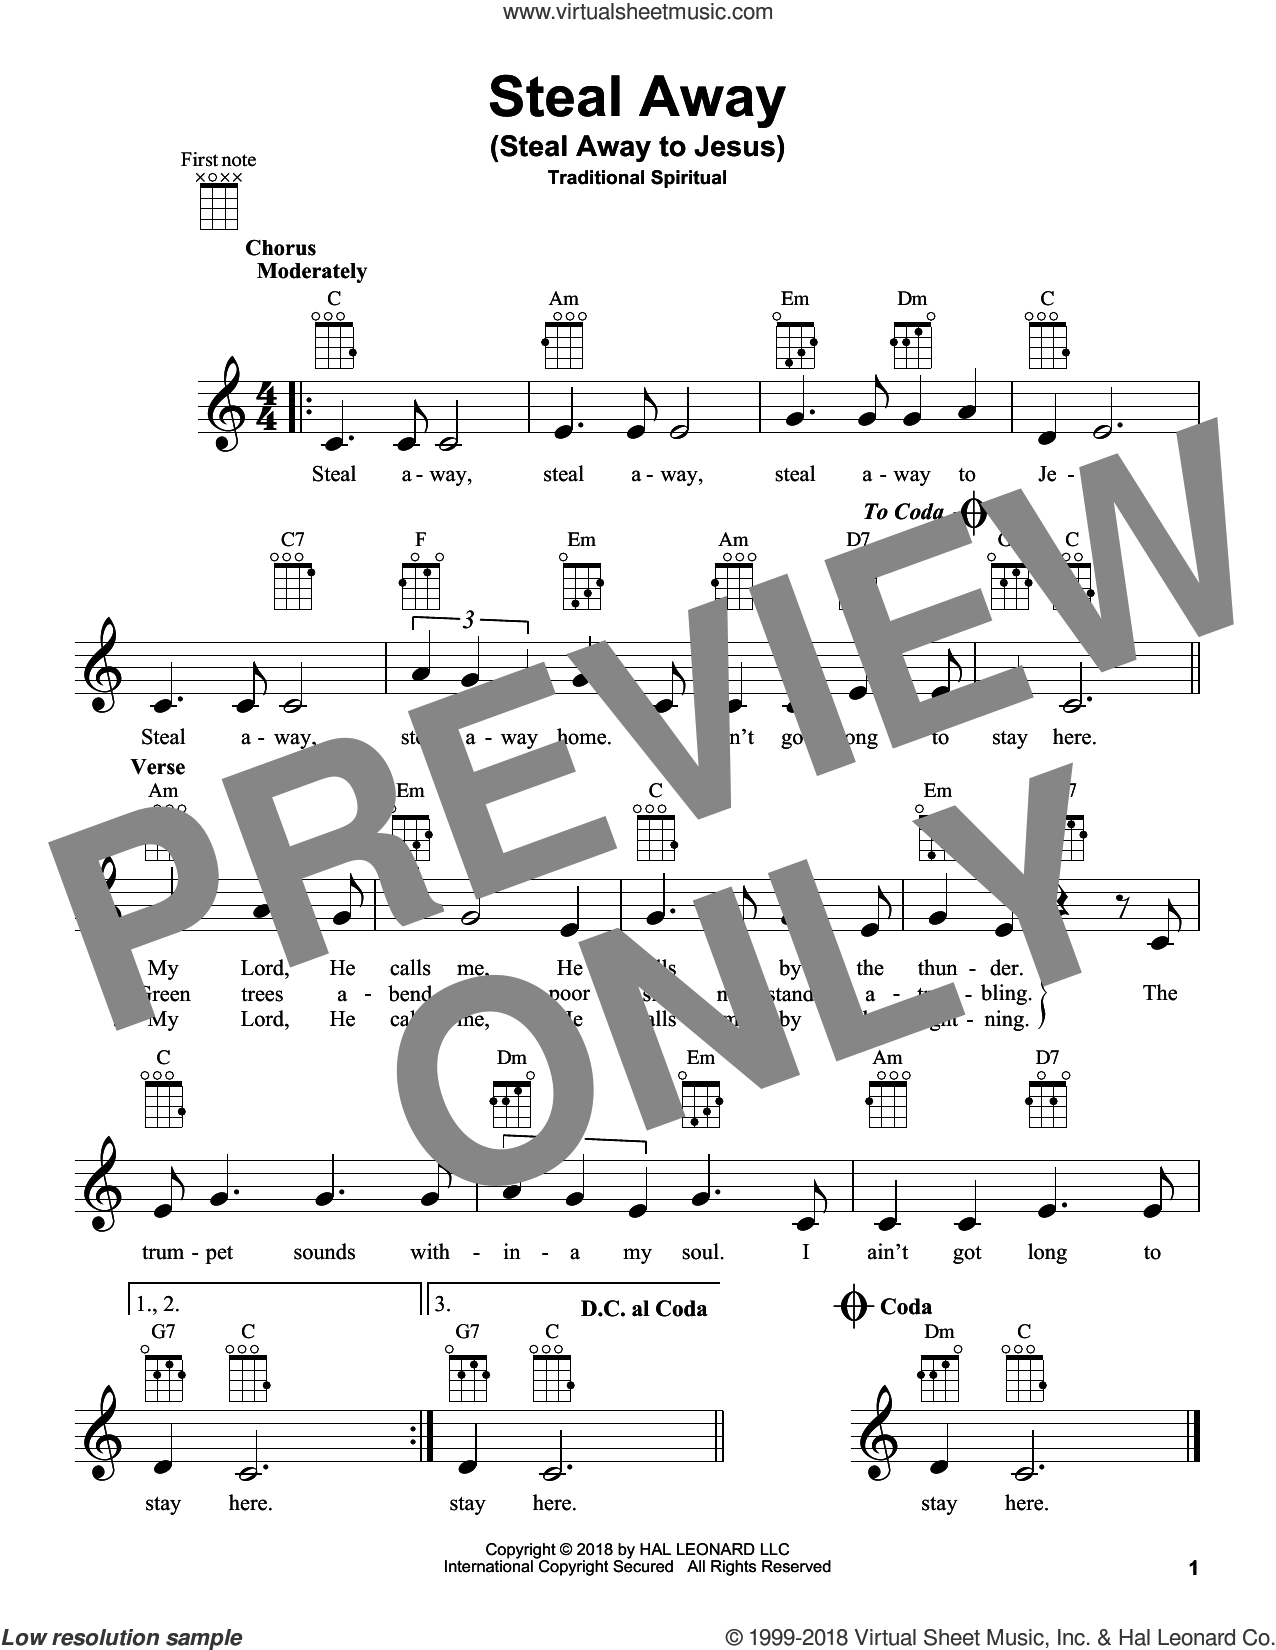 Steal Away (Steal Away To Jesus) sheet music for ukulele, intermediate skill level